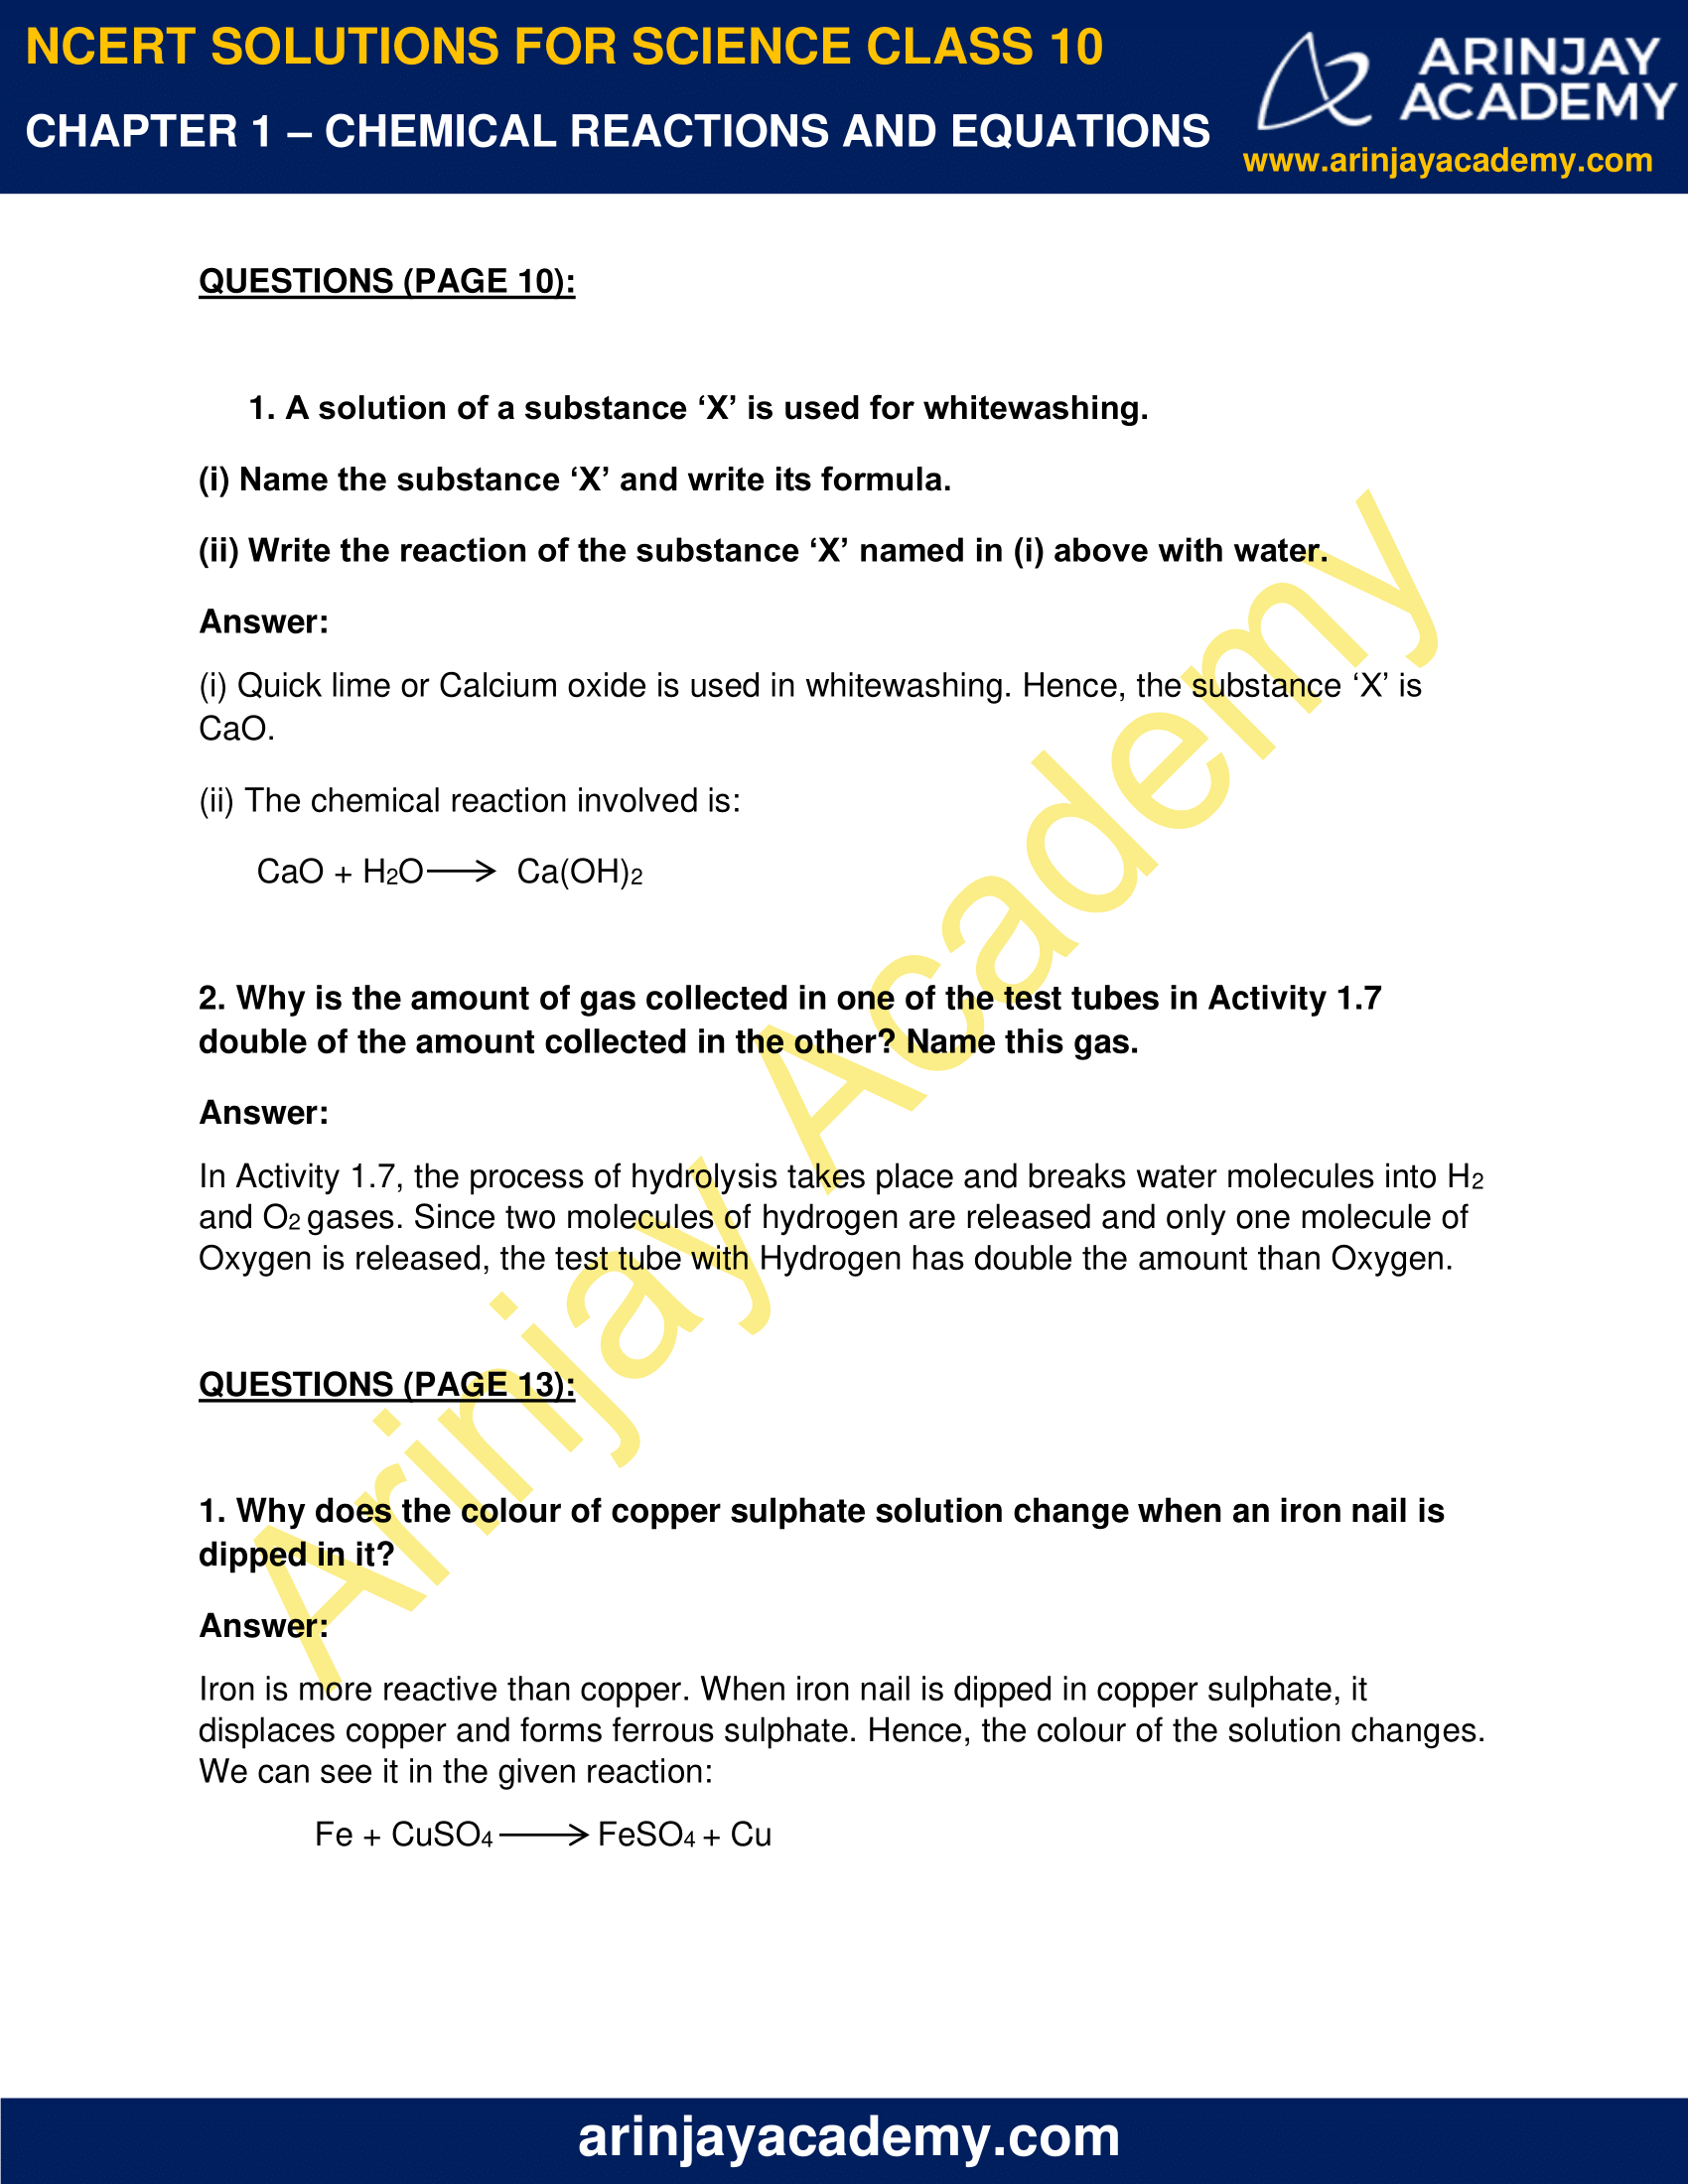 NCERT Solutions for Class 10 Science Chapter 1 image 2